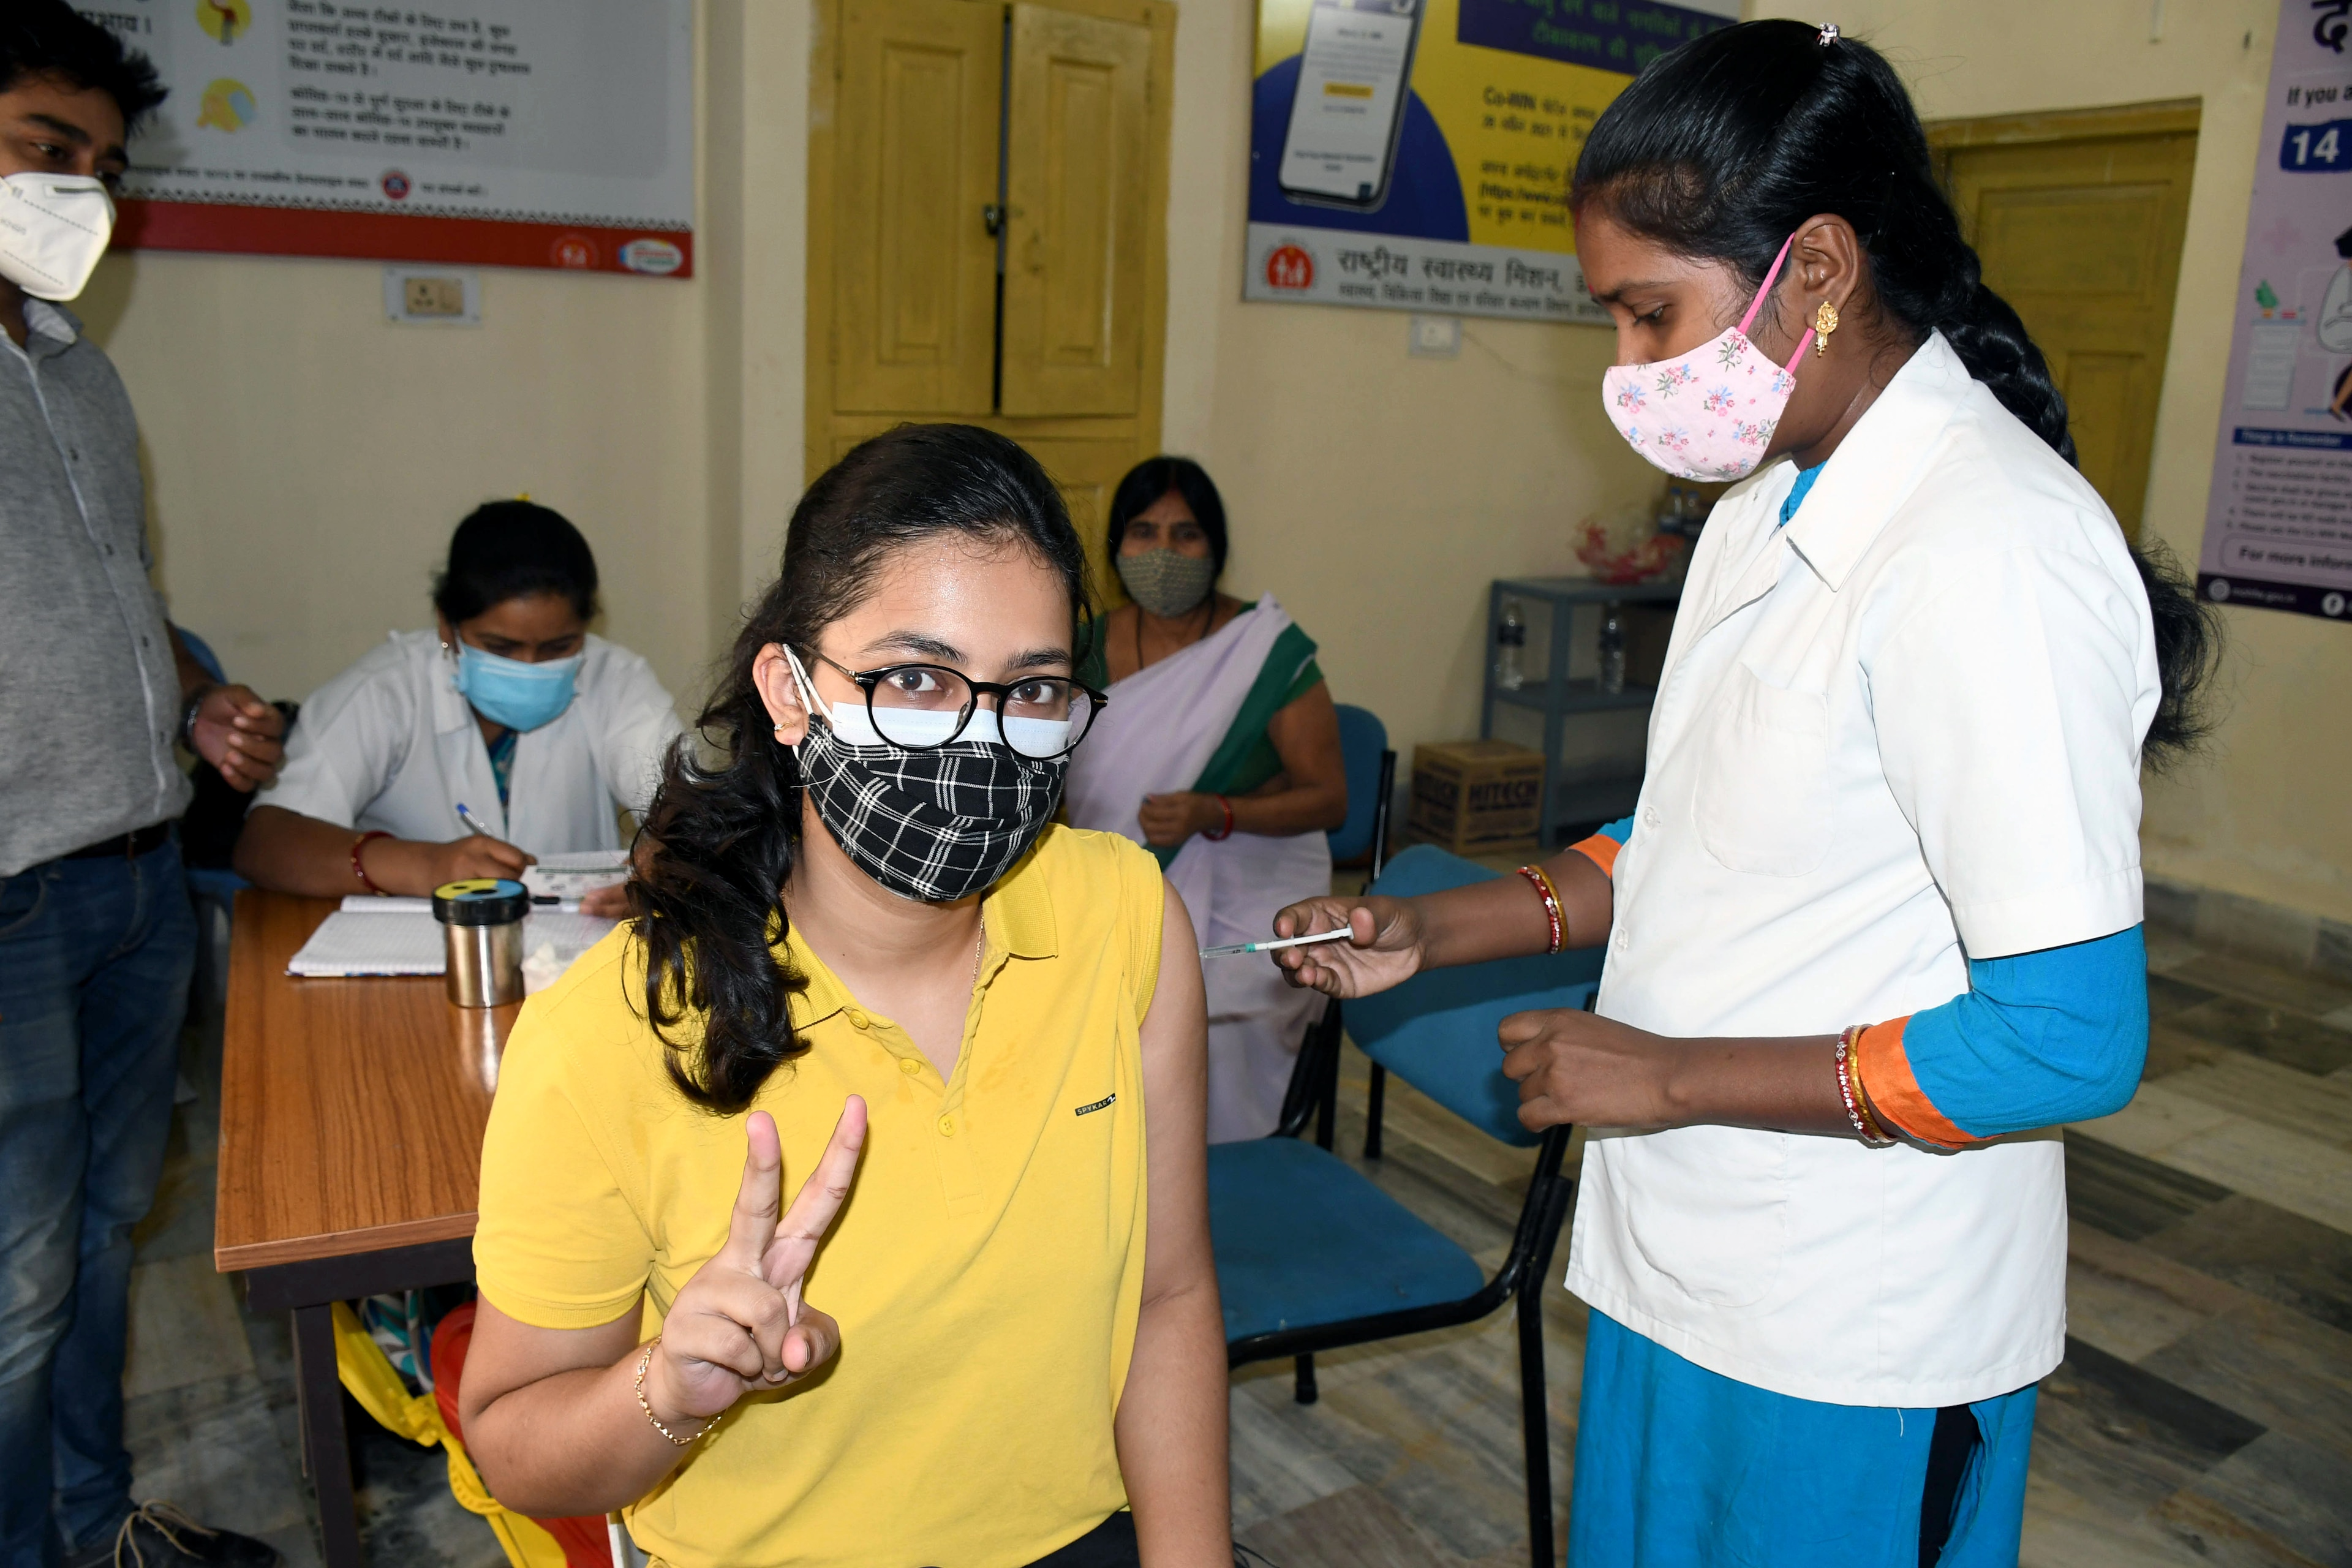 Covid surge resulted in shorfall of 190 mn doses by June in India: COVAX